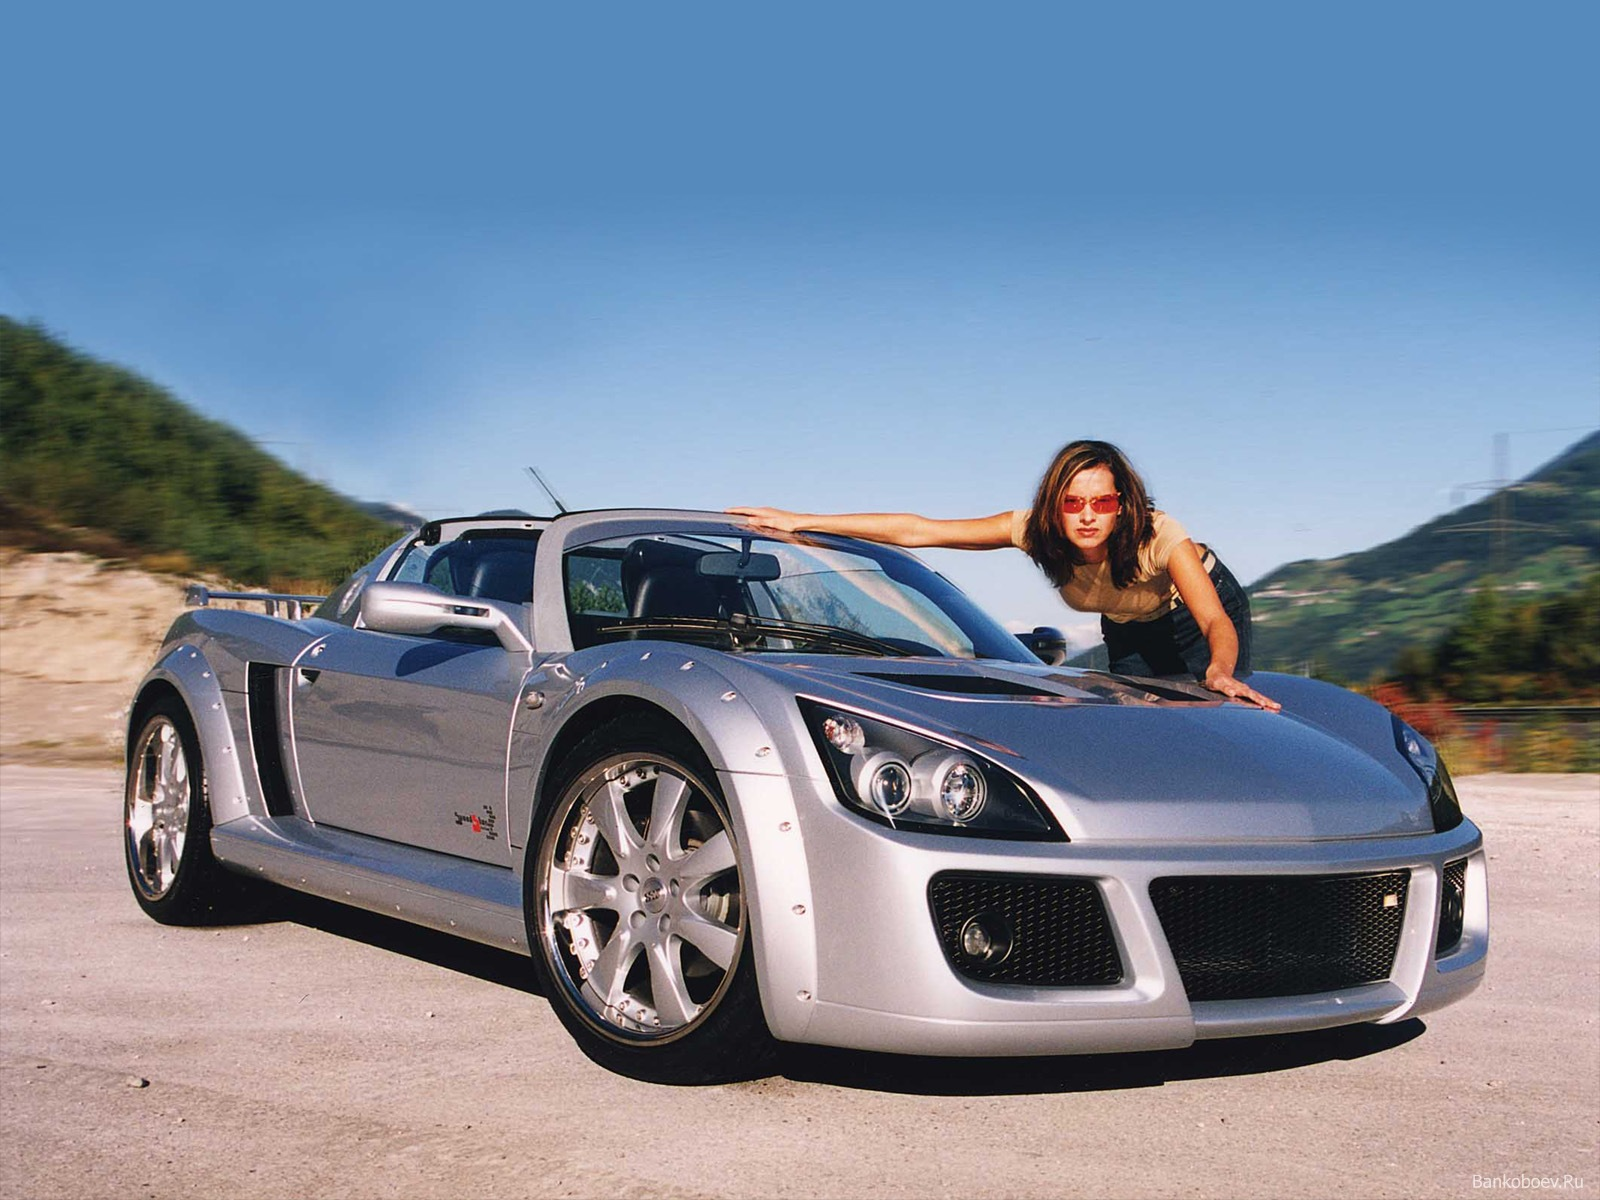 Home Girls Girls and cars Download wallpaper Sport Car and girl 1600x1200